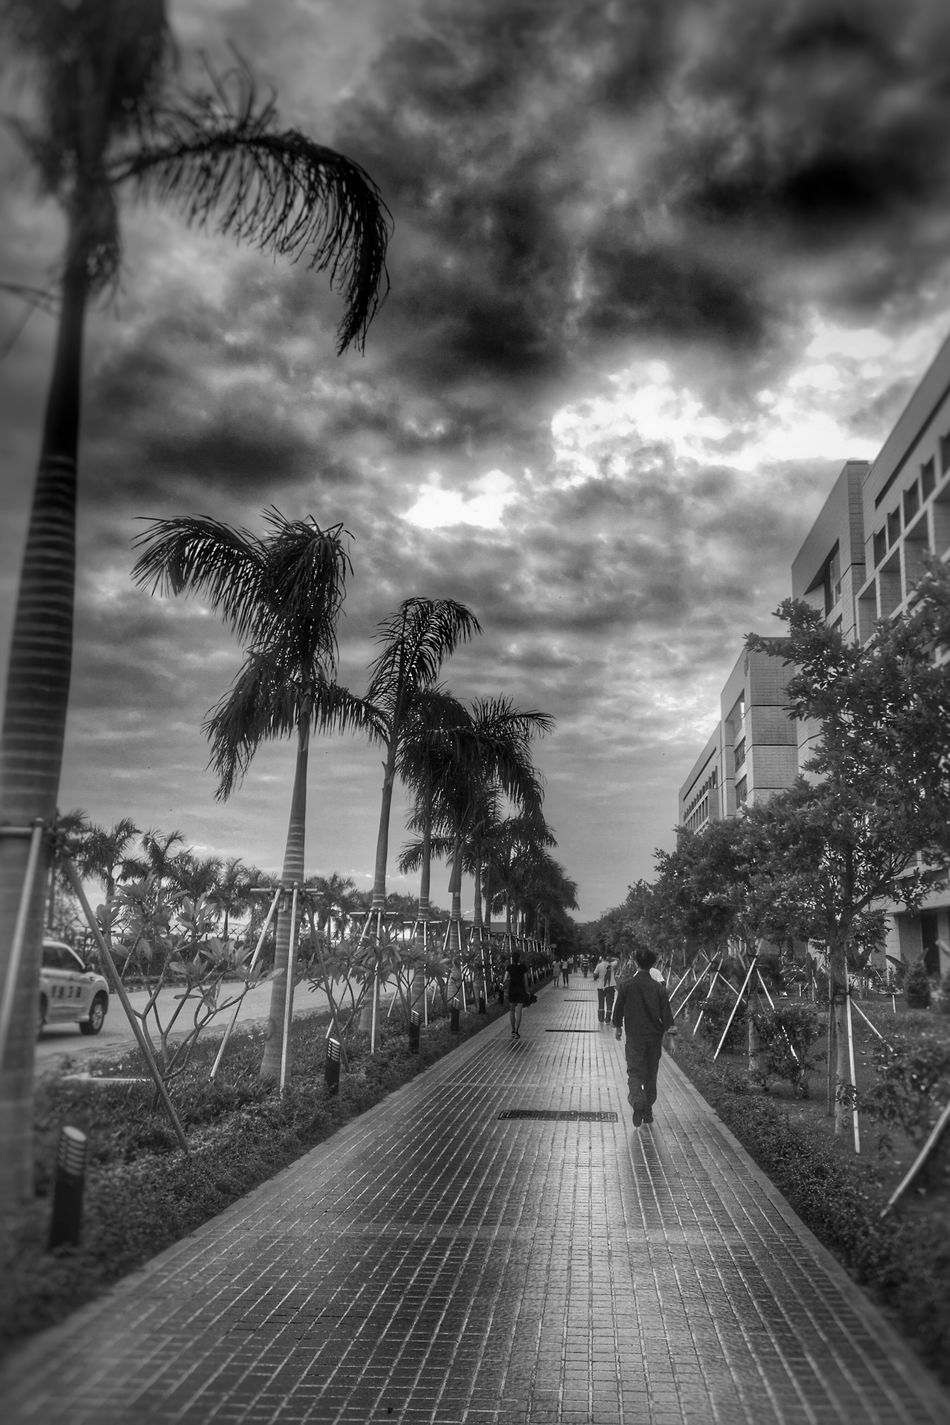 Palm Tree Tree Cloud - Sky The Way Forward Built Structure Architecture Incidental People Sky Building Exterior Water Diminishing Perspective Growth Tree Trunk Cloudy Day Outdoors Footpath Tranquility Cloudscape